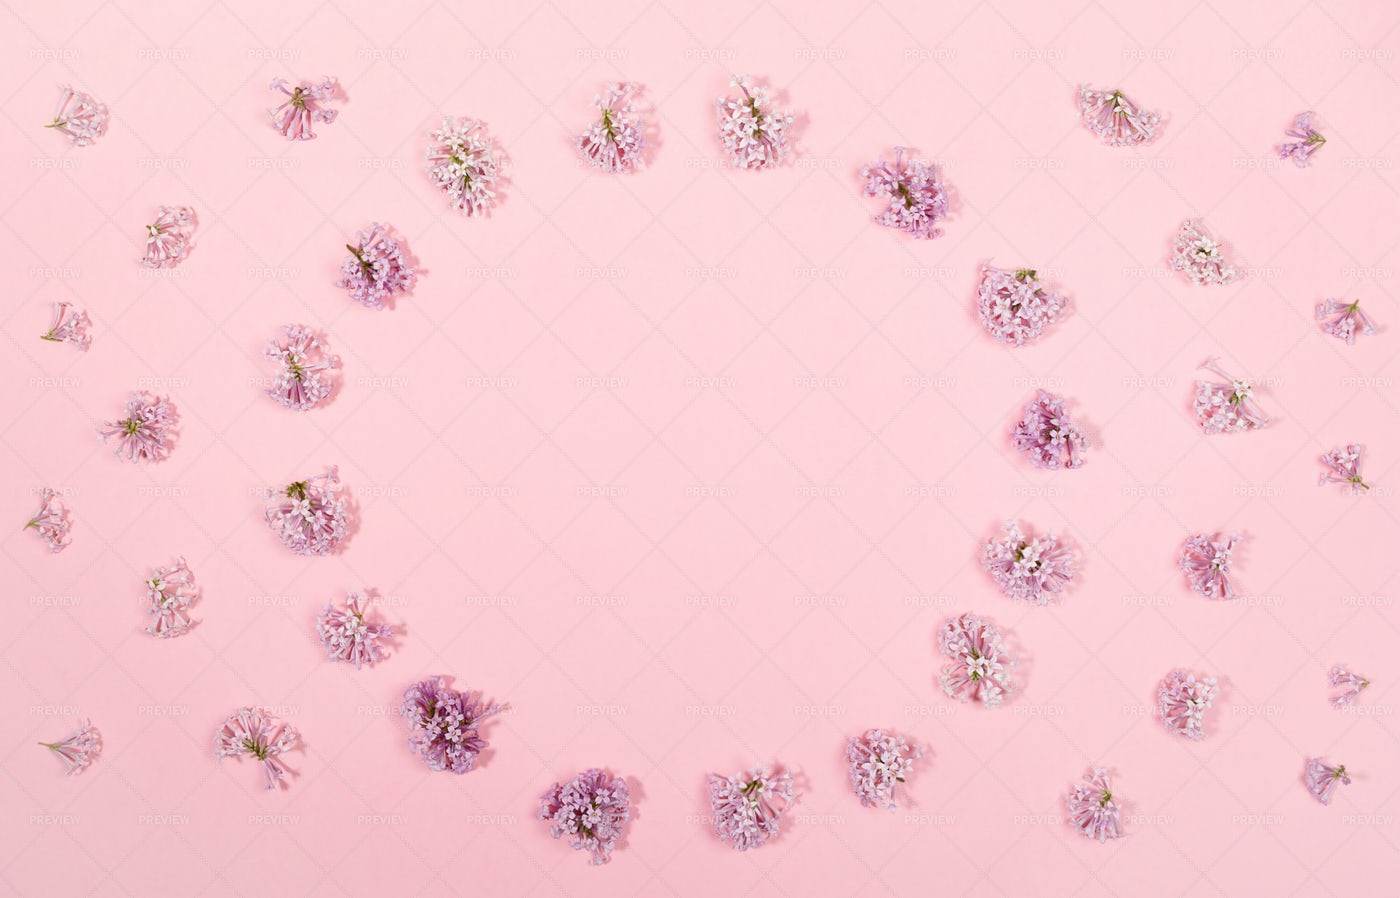 Pink Layout With Lilac Flowers: Stock Photos